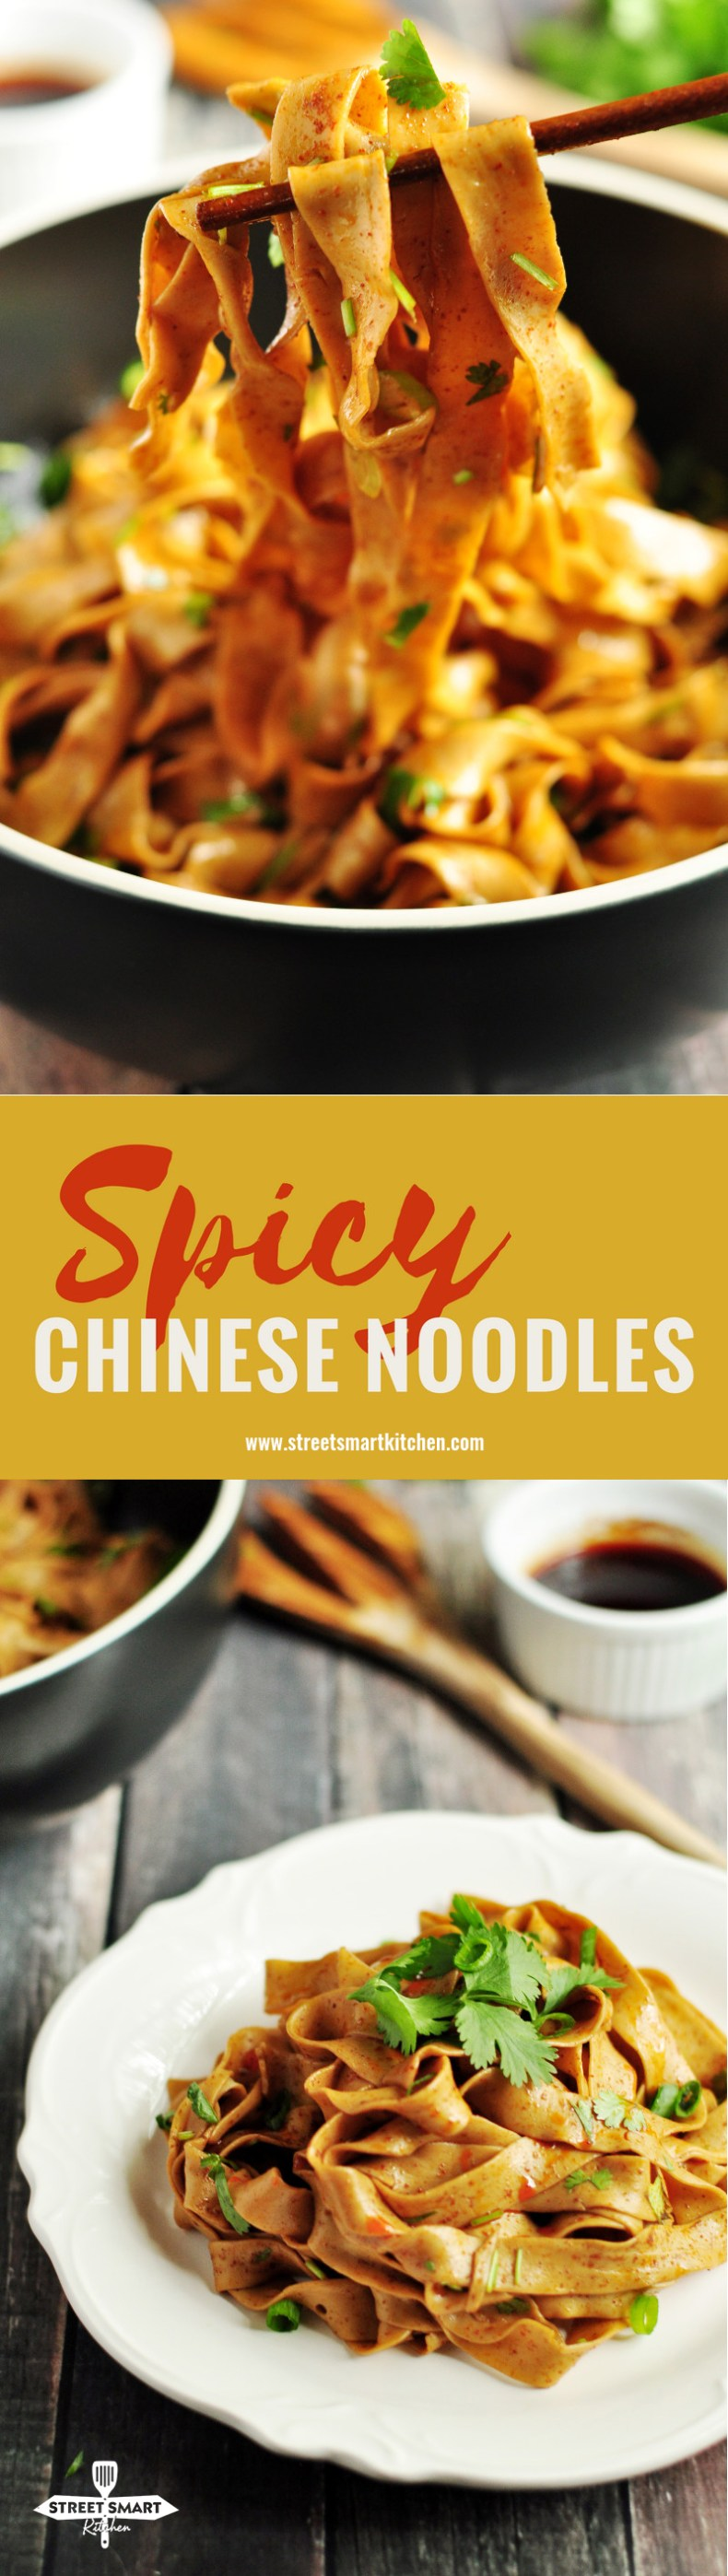 Spicy Chinese Noodles